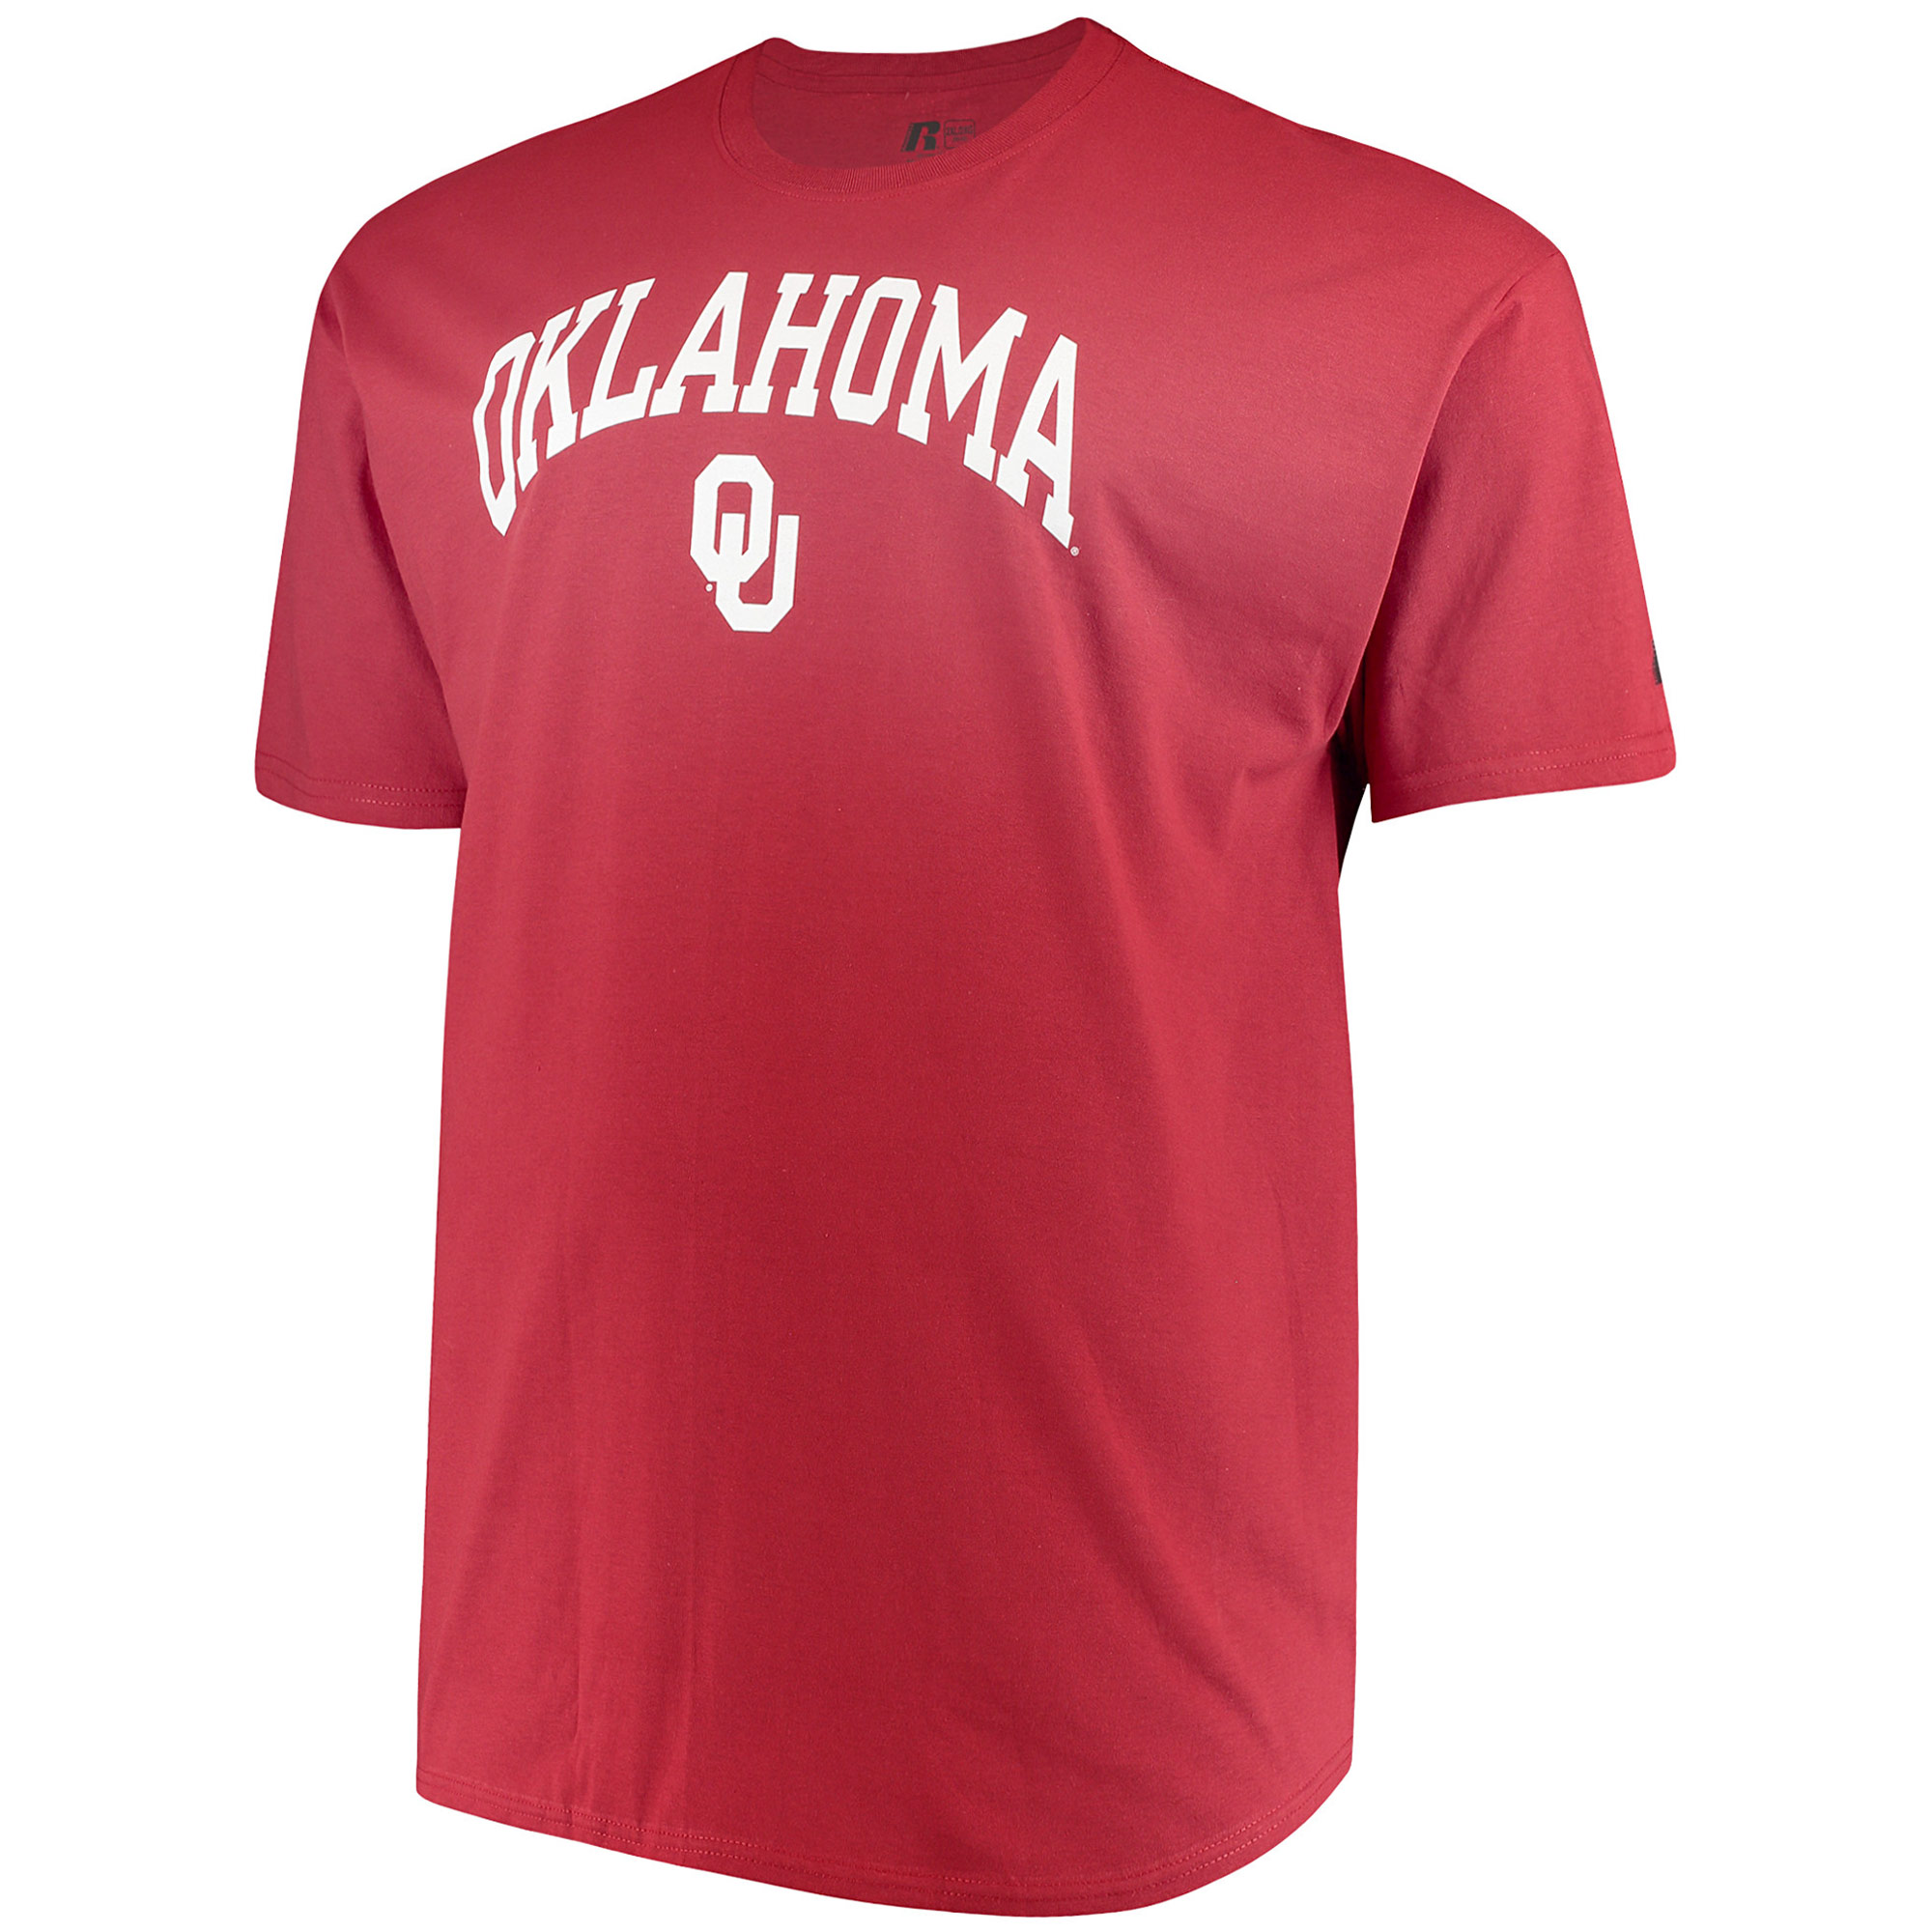 Men's Russell Cardinal Oklahoma Sooners Big & Tall Classic Crew Neck T-Shirt